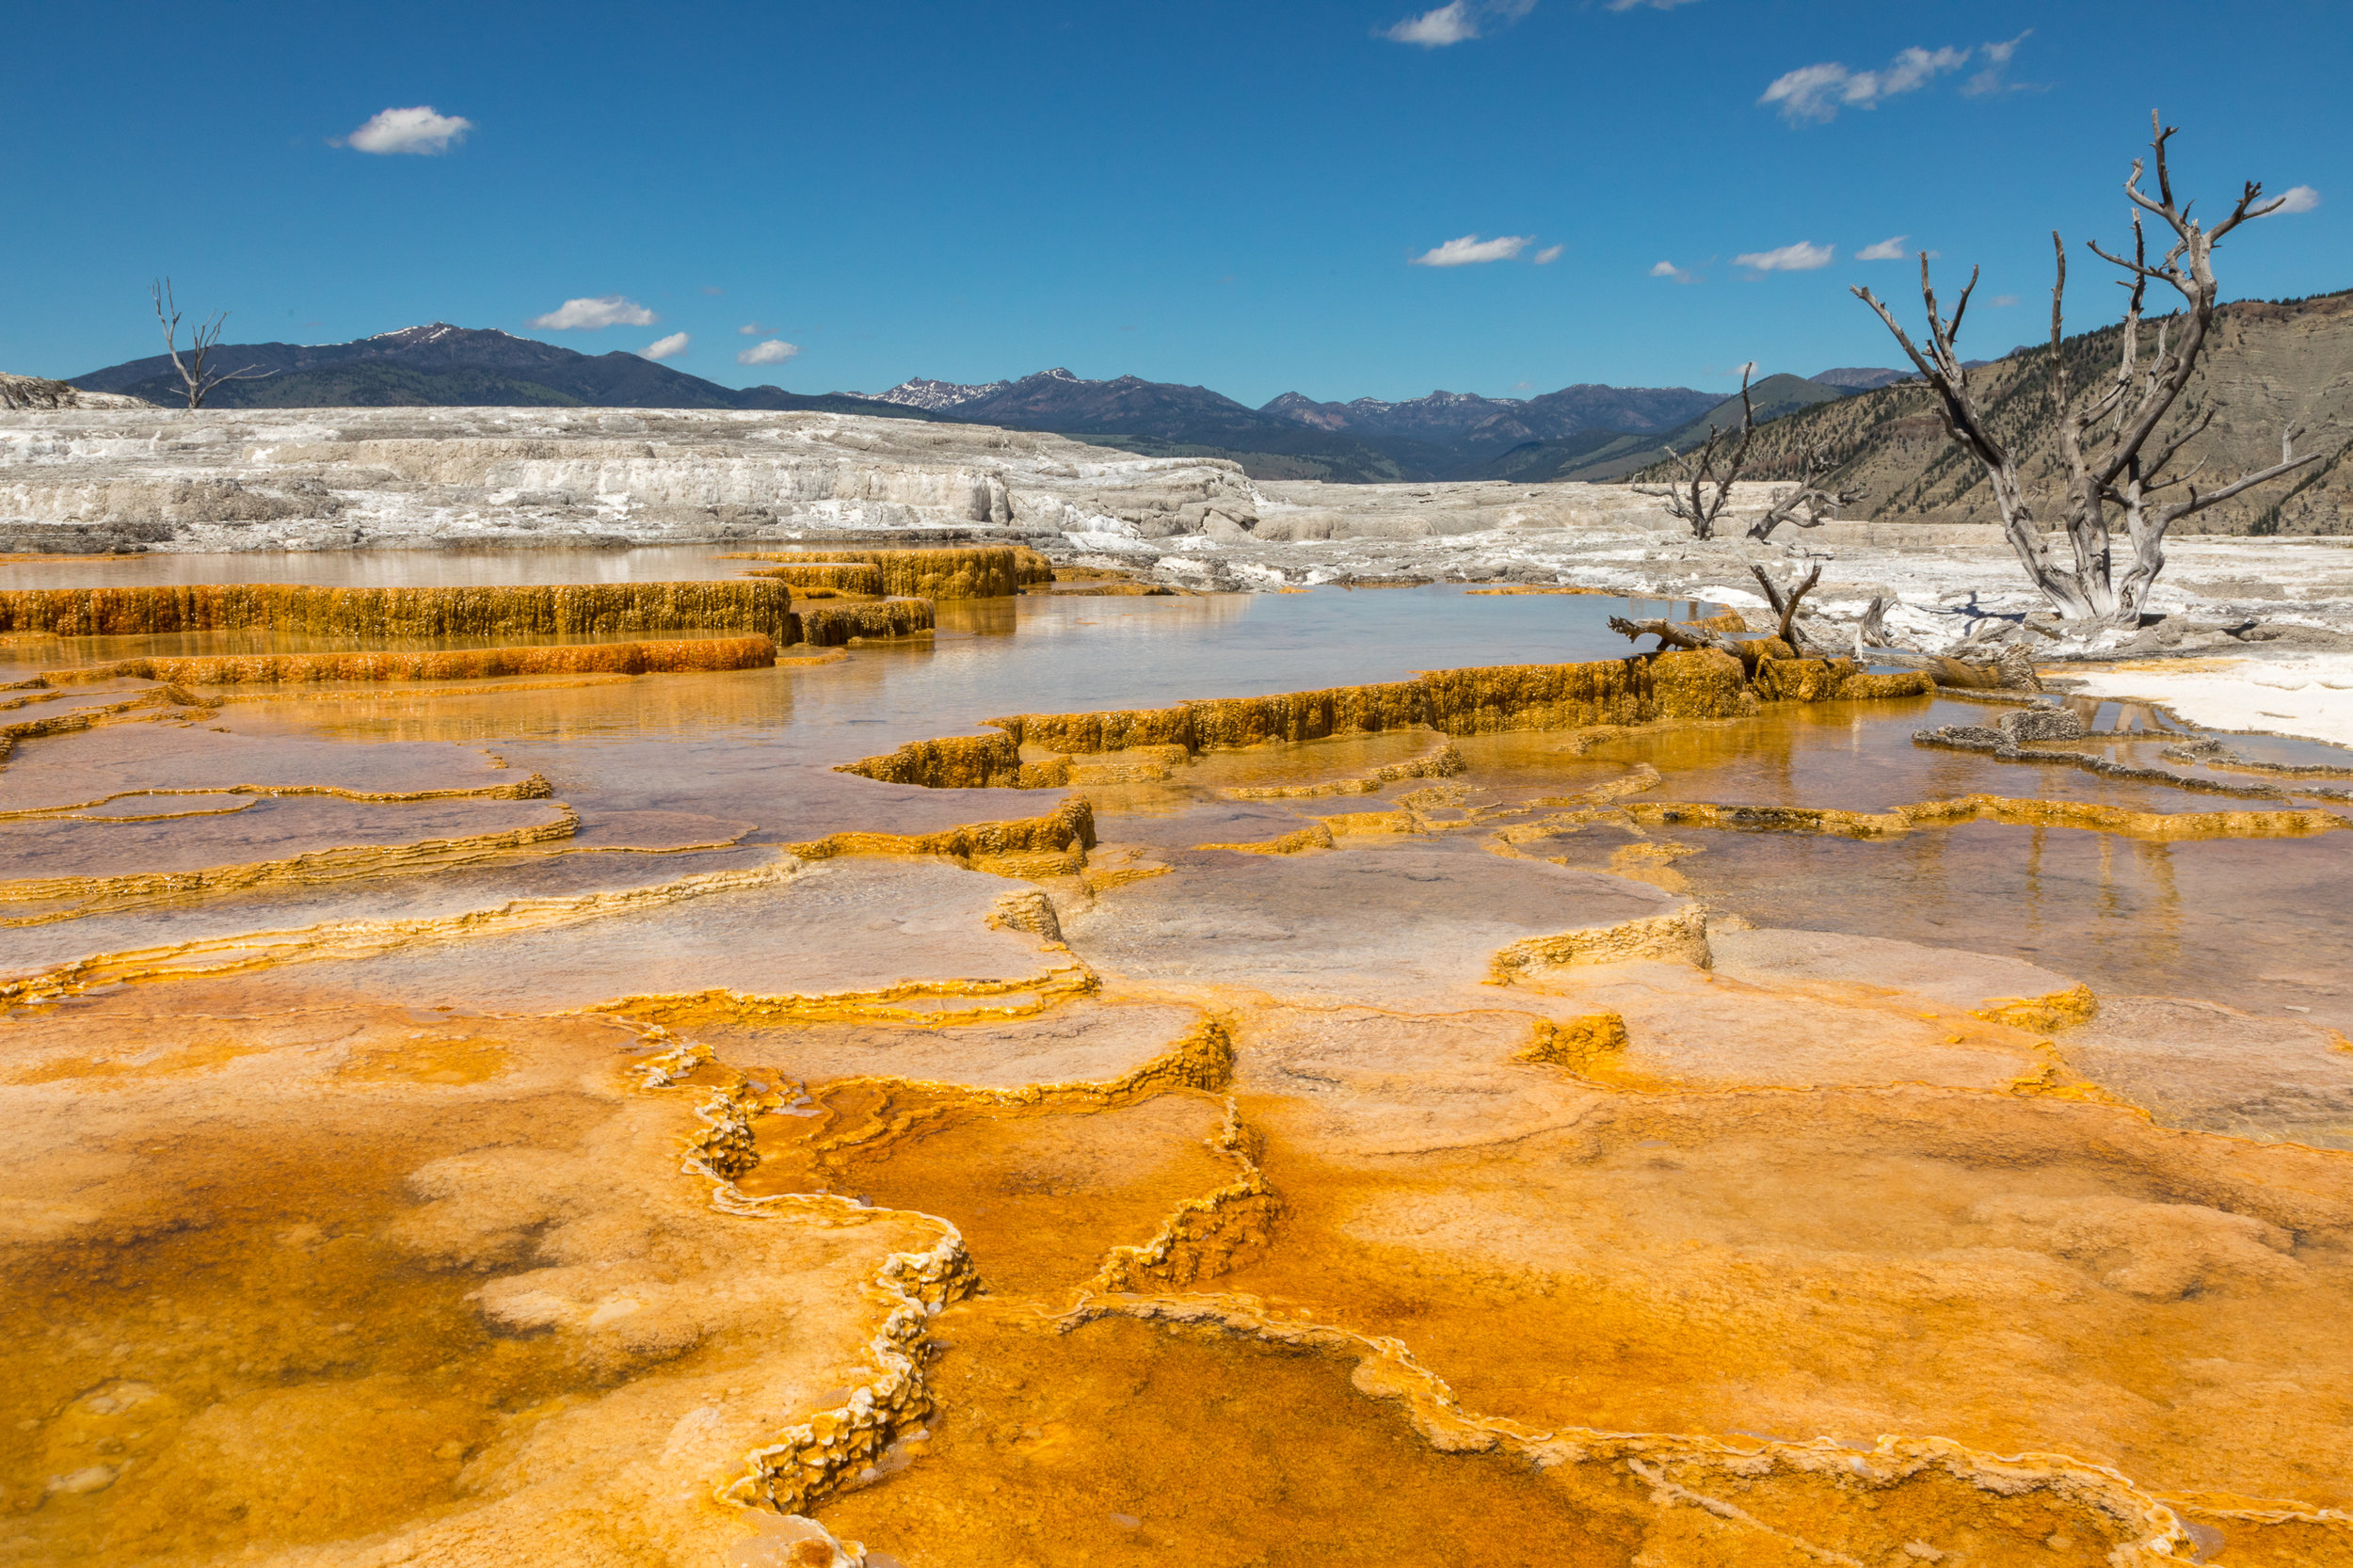 Mammoth Hot Springs, Yellowstone National Park, Image # 7431